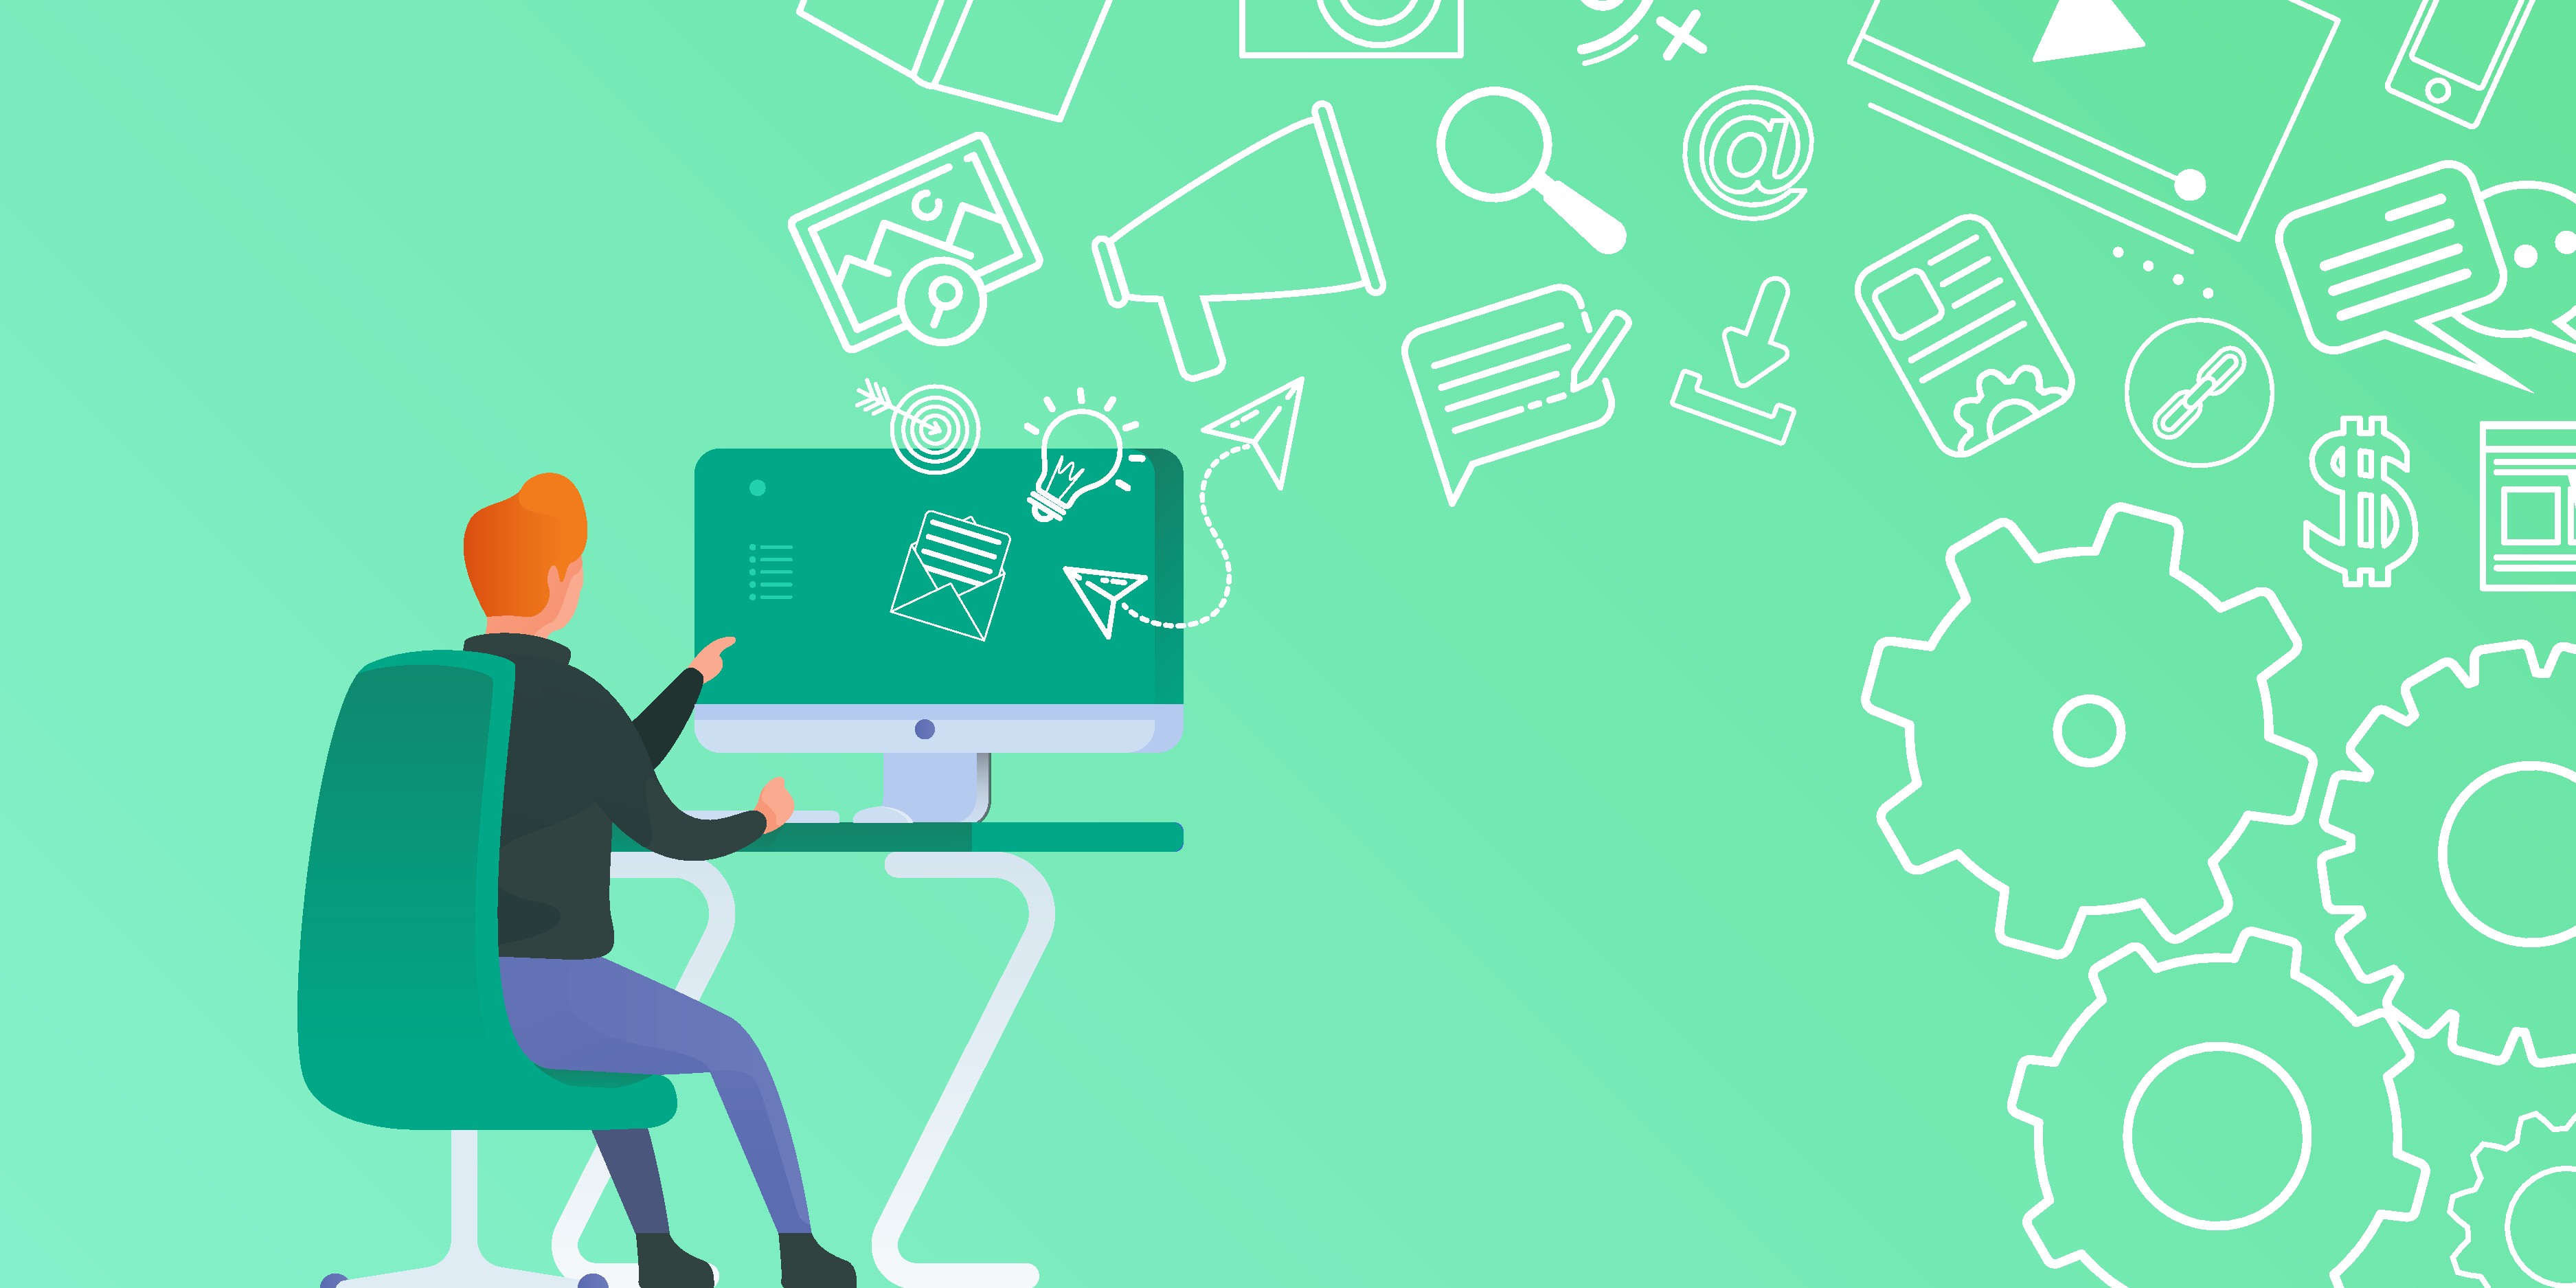 3 Ways to Fit Content Creation Into Your Daily Routine